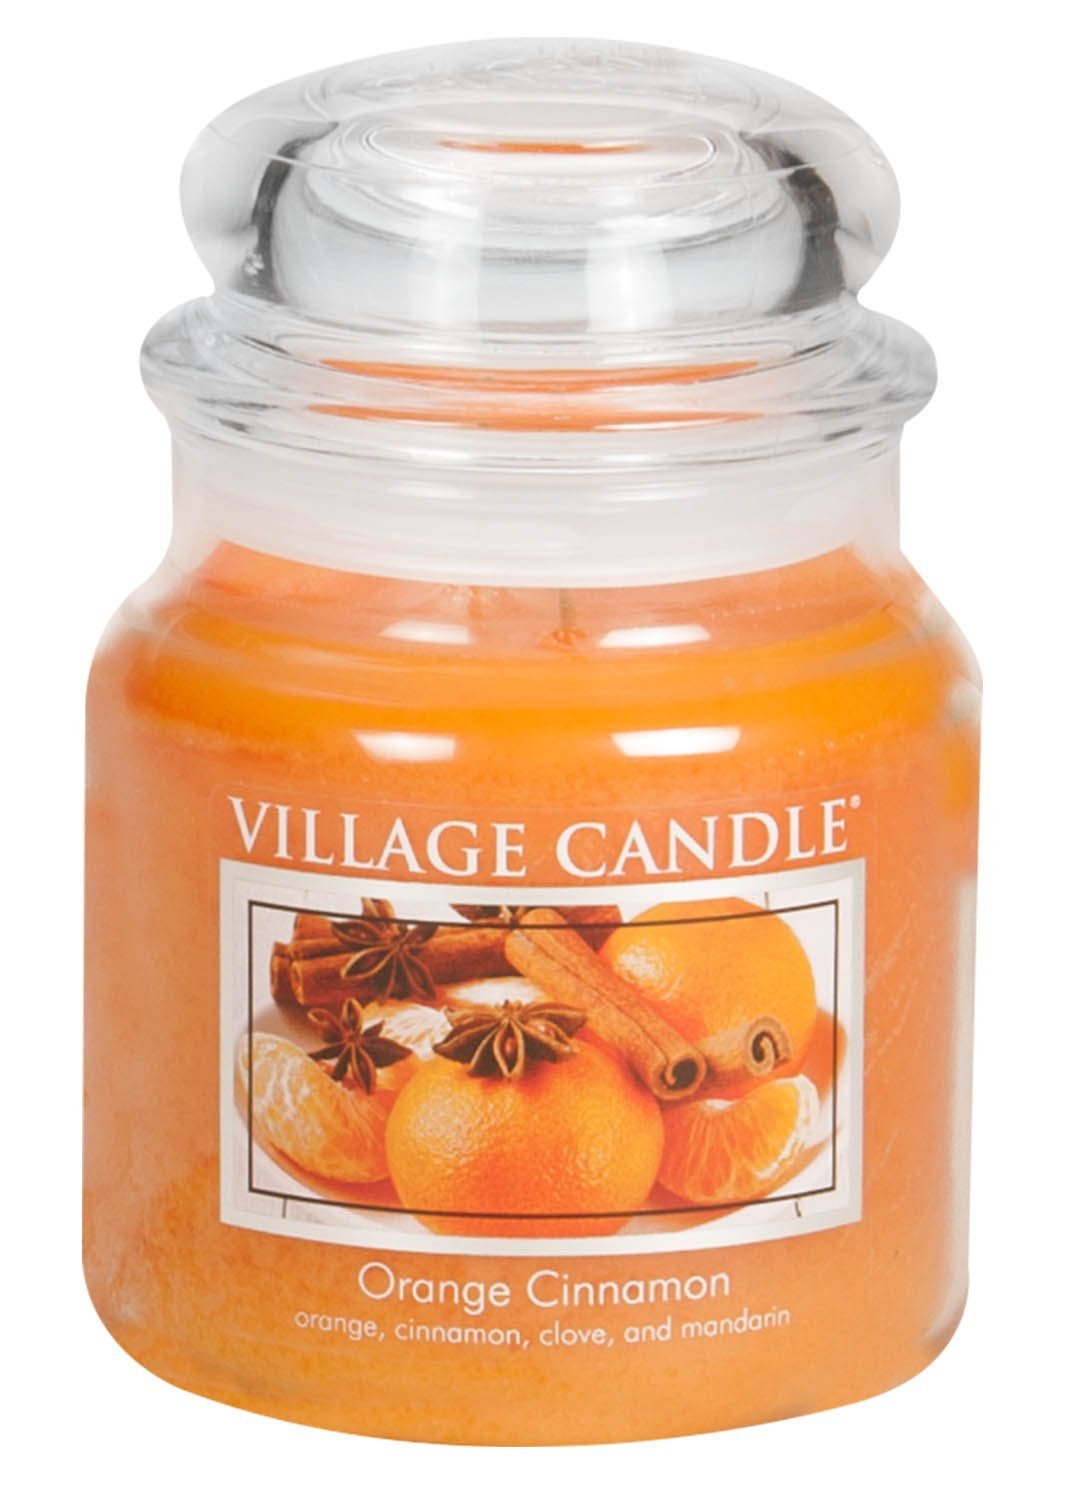 Village Candle Orange Cinnamon 16 oz Glass Jar Scented Candle, Medium